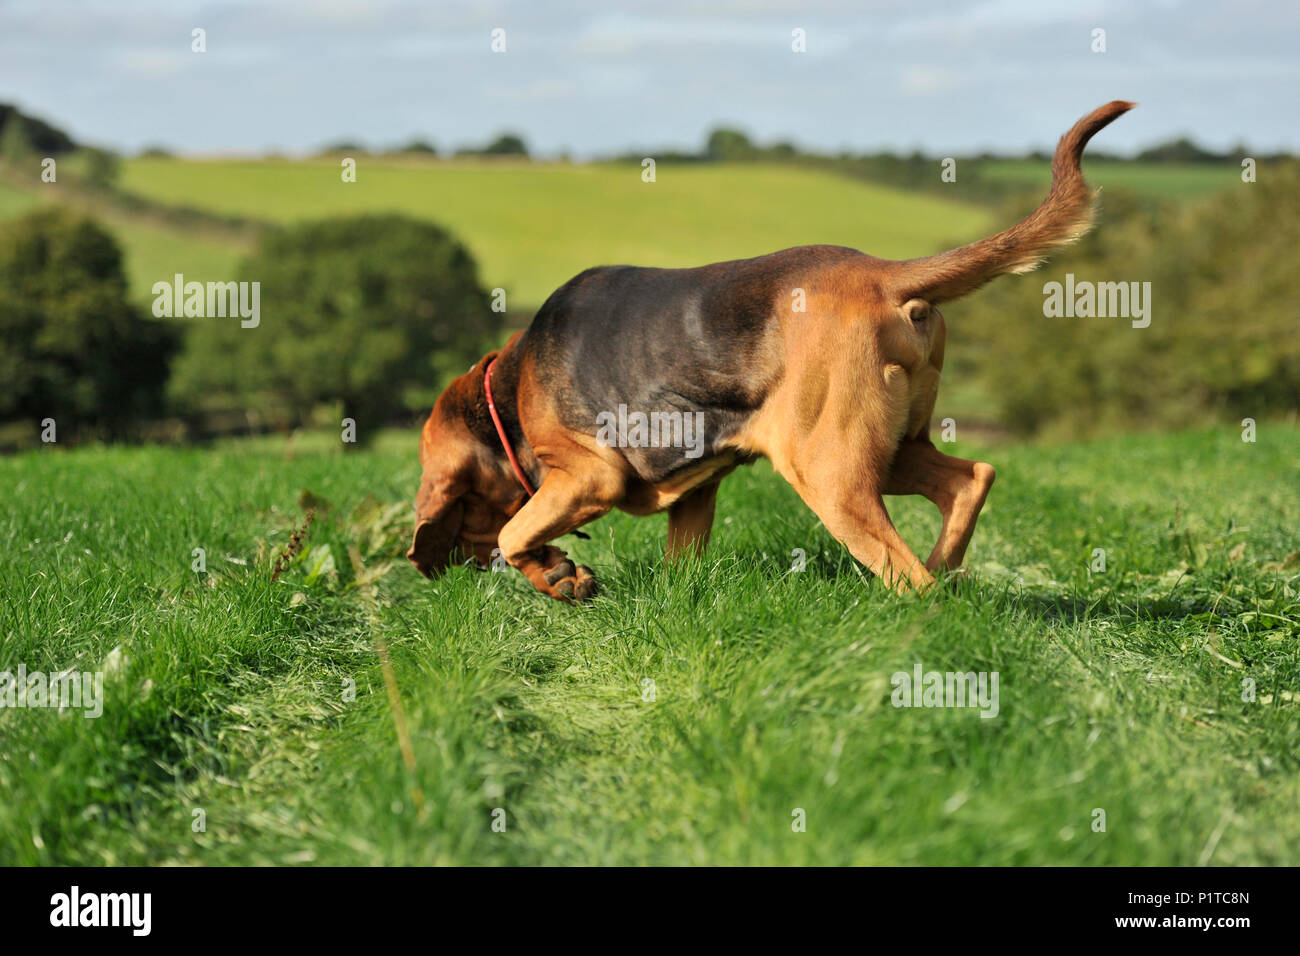 bloodhound sniffer dog - Stock Image